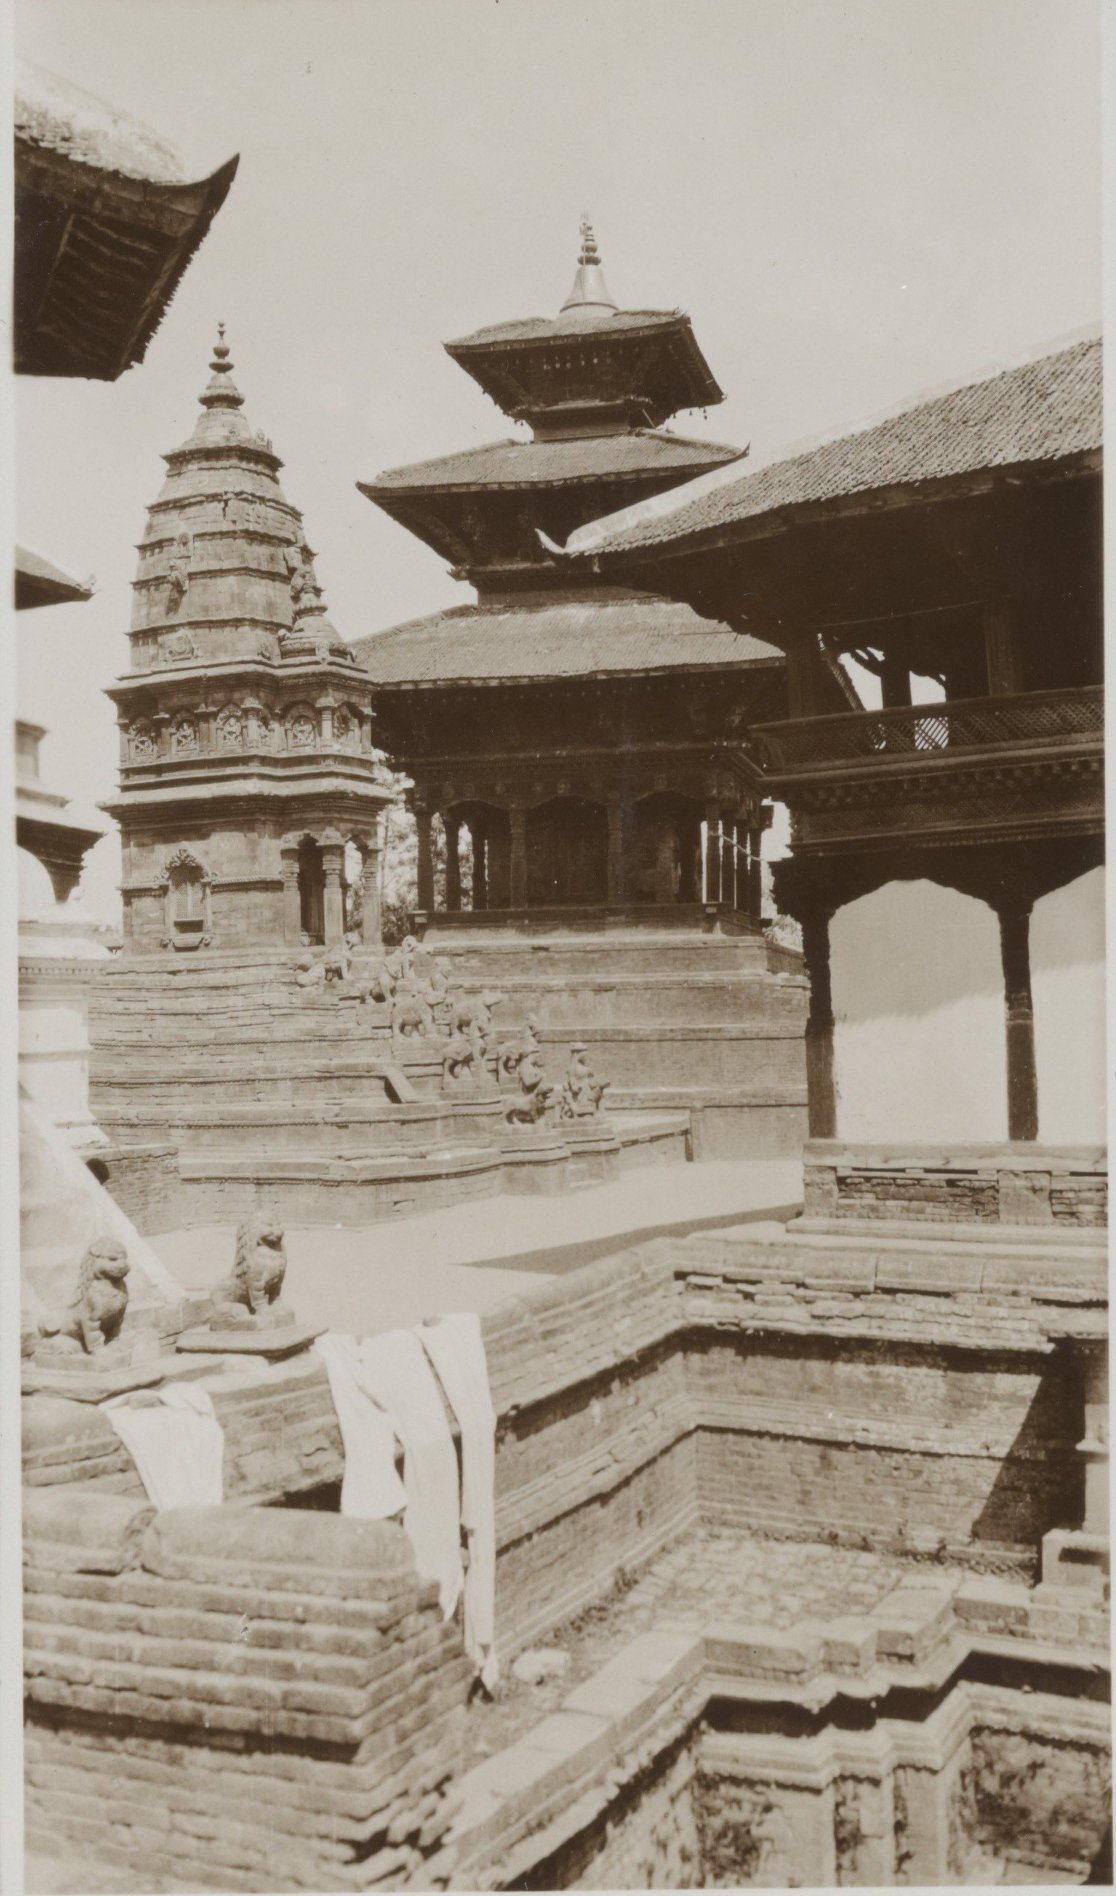 Siddhi Laxmi Temple and Lanpadegal 1932-34 image